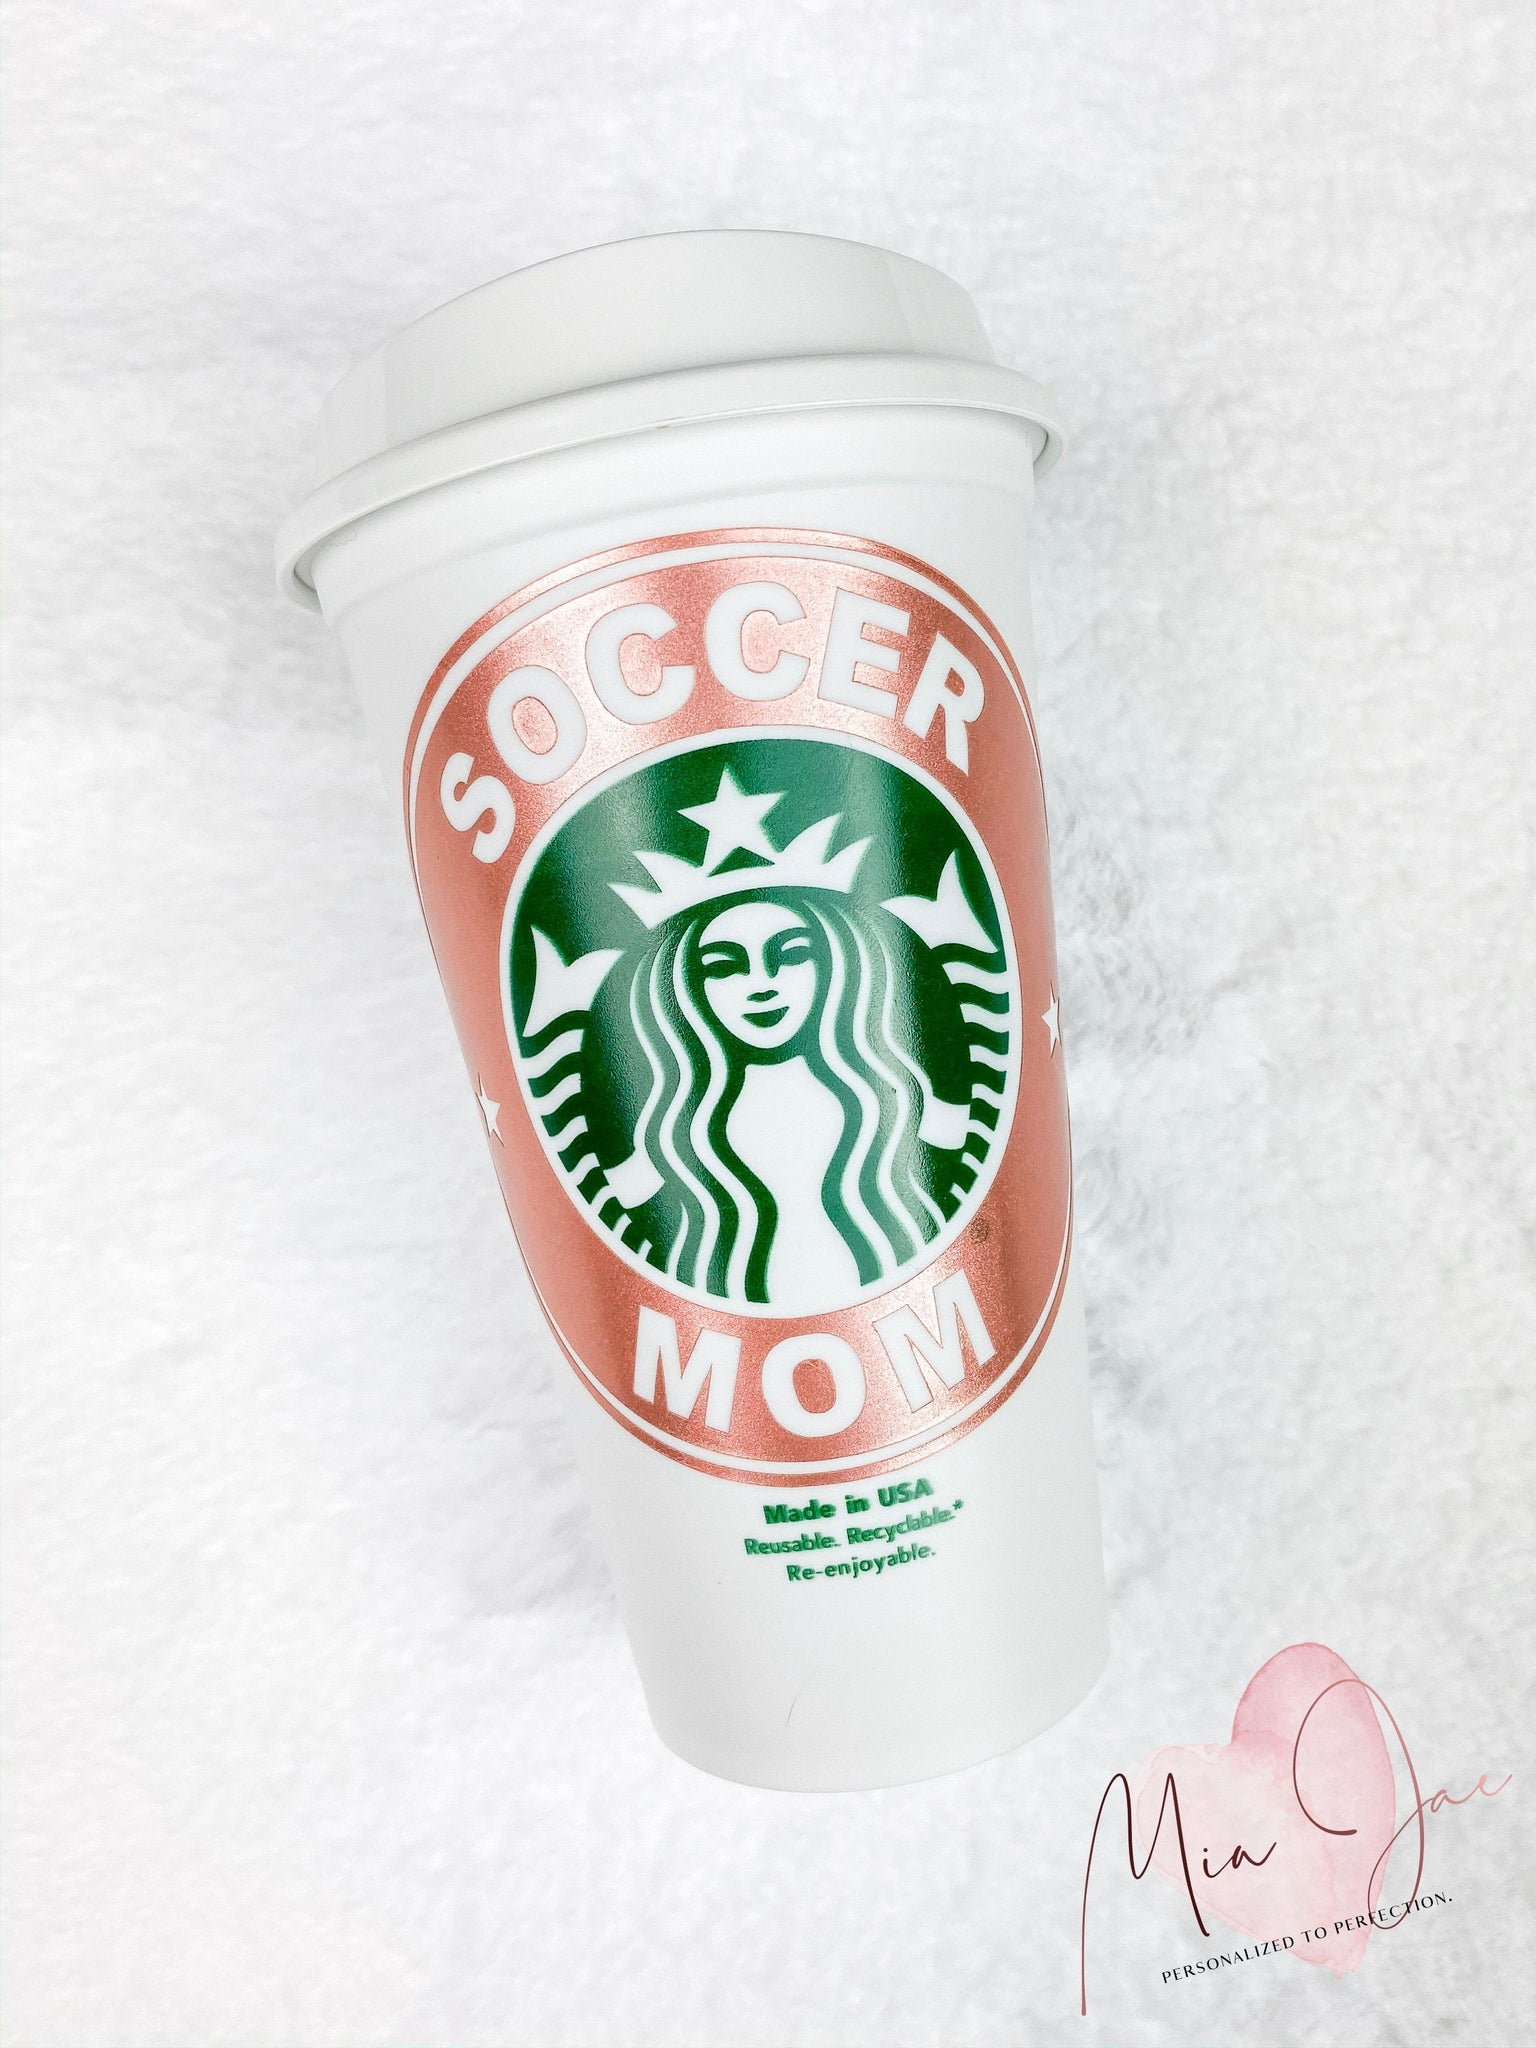 Soccer Mom Personalized Hot Cup